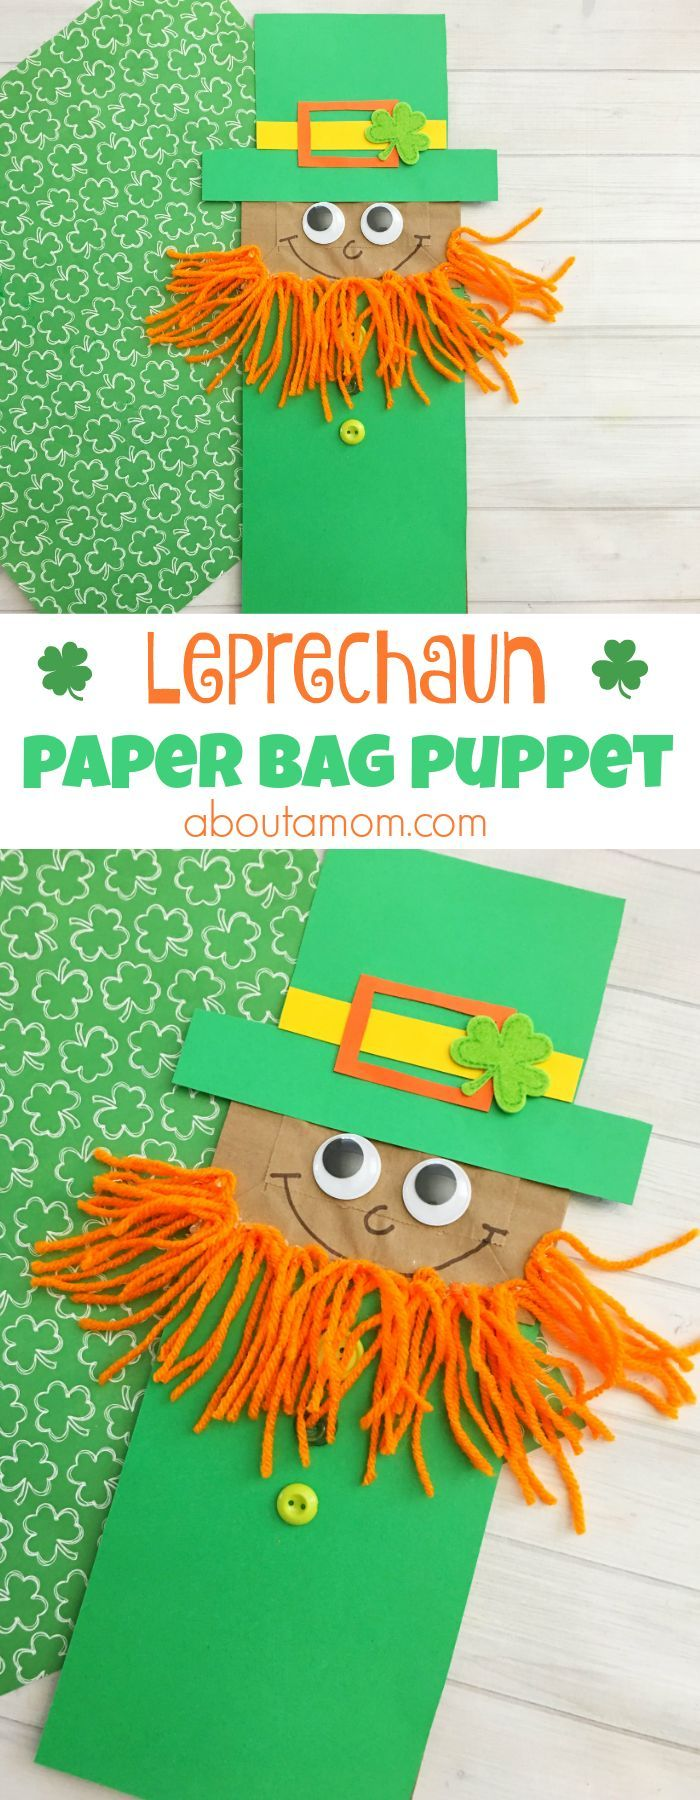 Celebrate St. Patrick's Day with the kids. Make this fun Leprechaun paper bag kid craft! #stpatricksday #kidsartsandcrafts